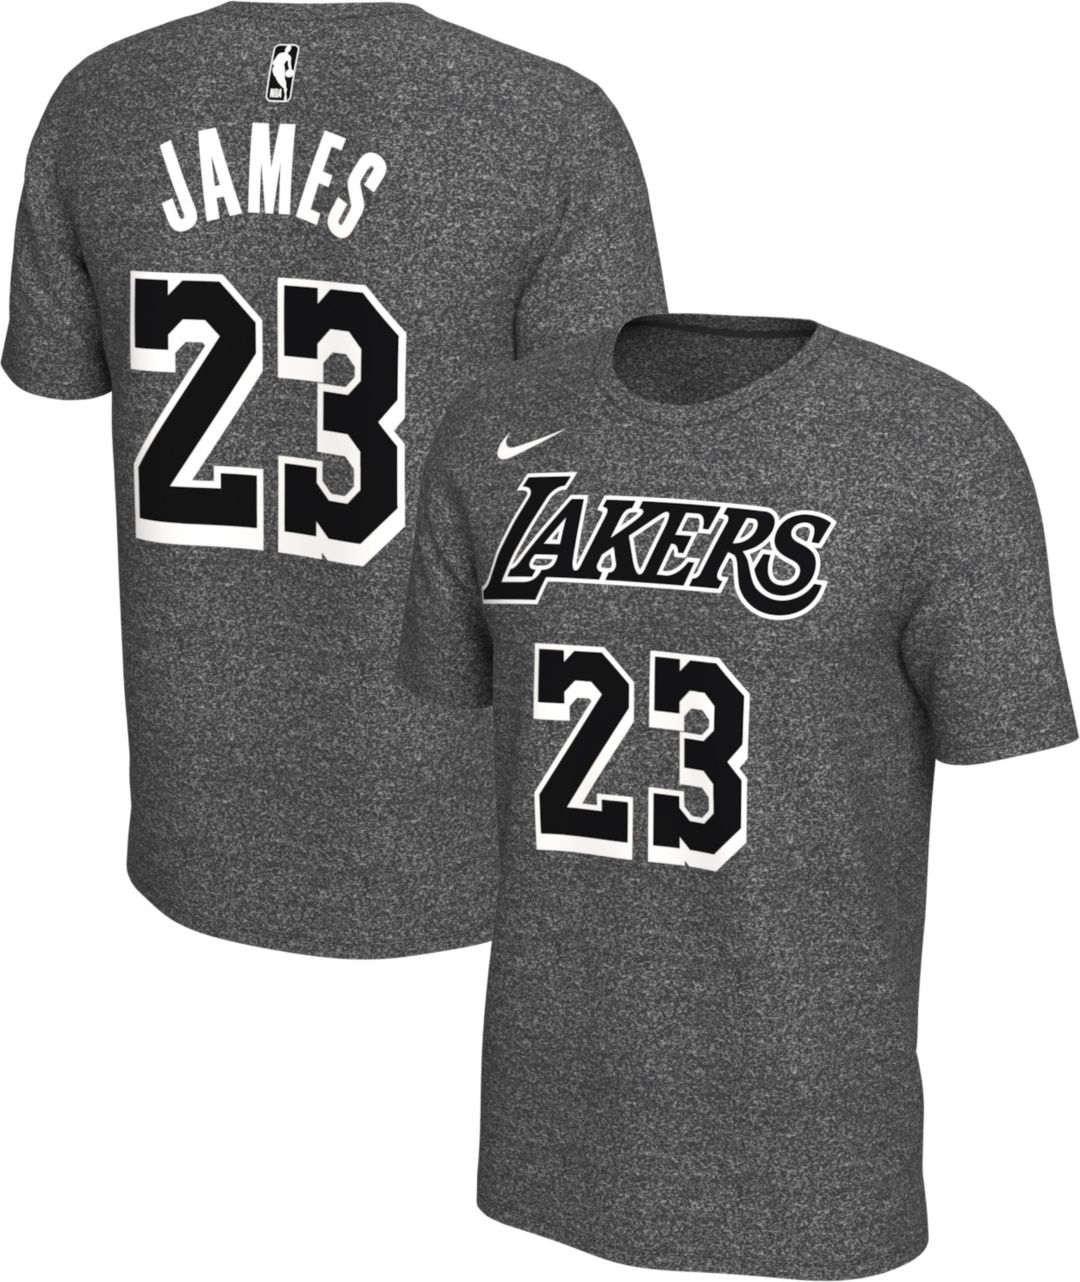 elegant and sturdy package unequal in performance elegant and sturdy package Nike Men's Los Angeles Lakers LeBron James #23 Dri-FIT Grey T-Shirt